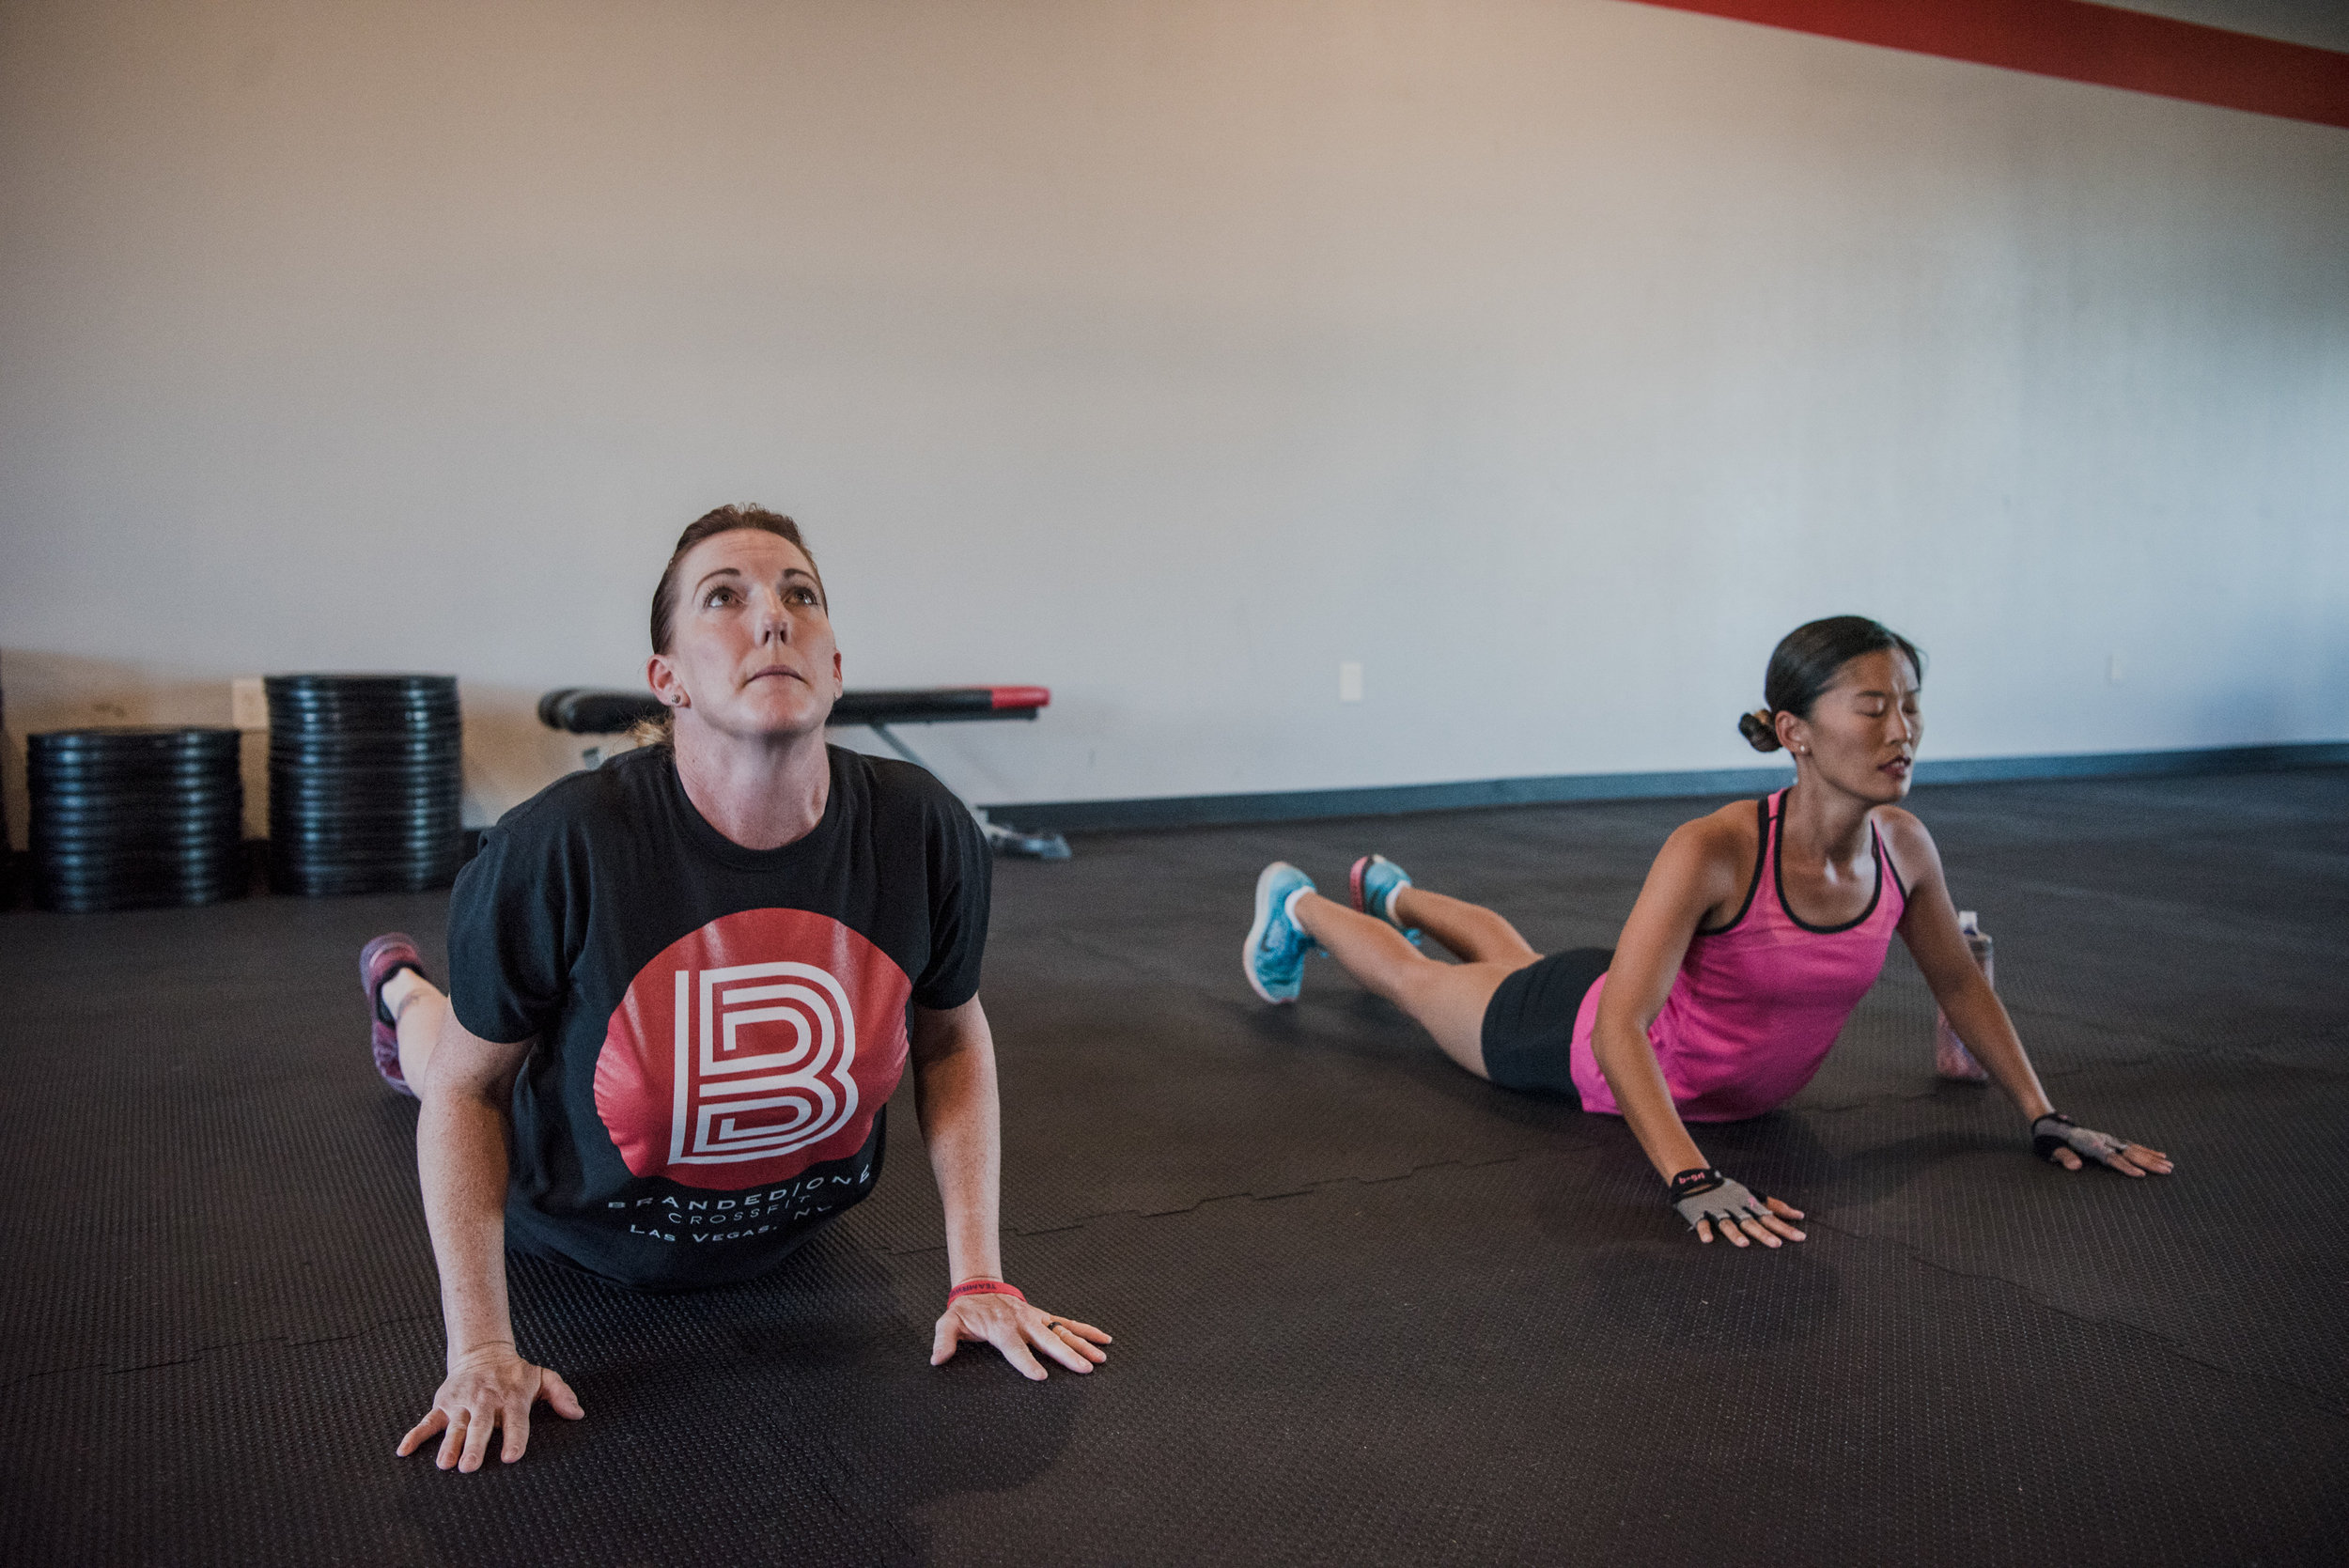 Elizabeth Higgins trains with Leah Elmquist at Branded One Cross Fit on Thursday, Aug. 25, 2017, in Las Vegas. Morgan Lieberman Las Vegas Review-Journal